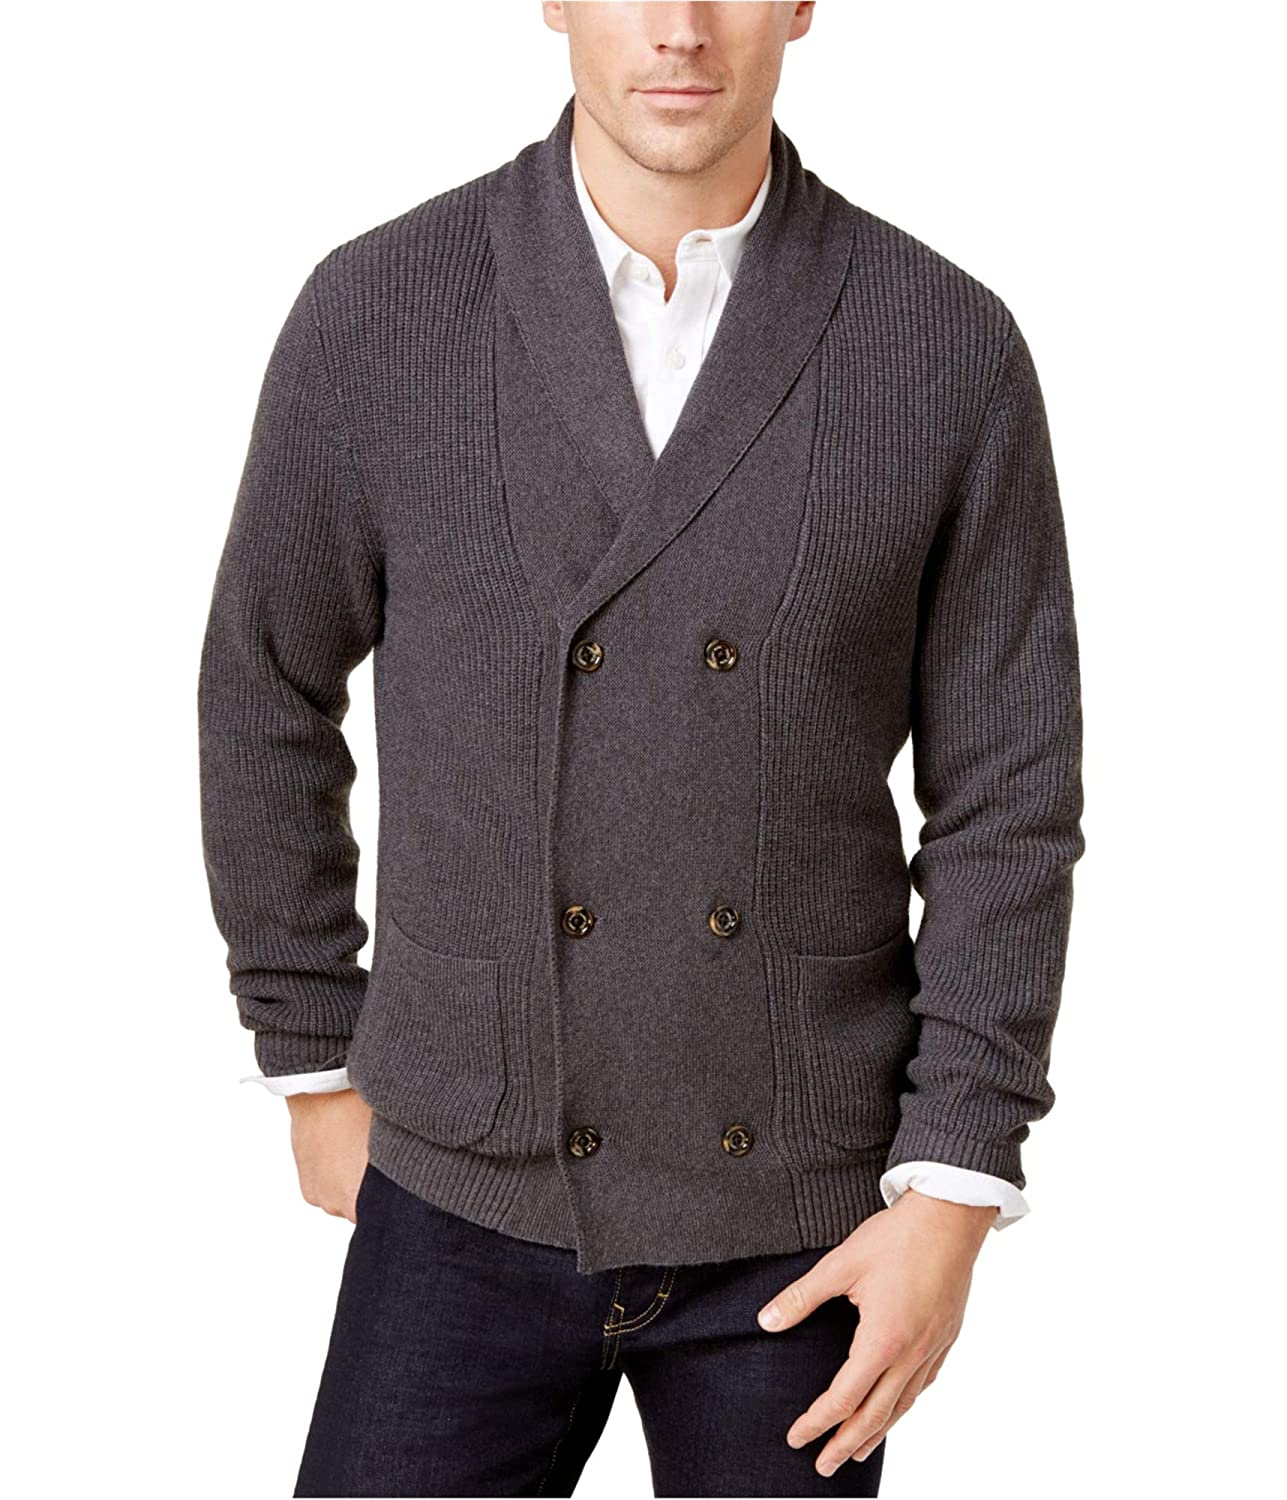 Tasso Elba Mens Double-Breasted Cardigan Sweater